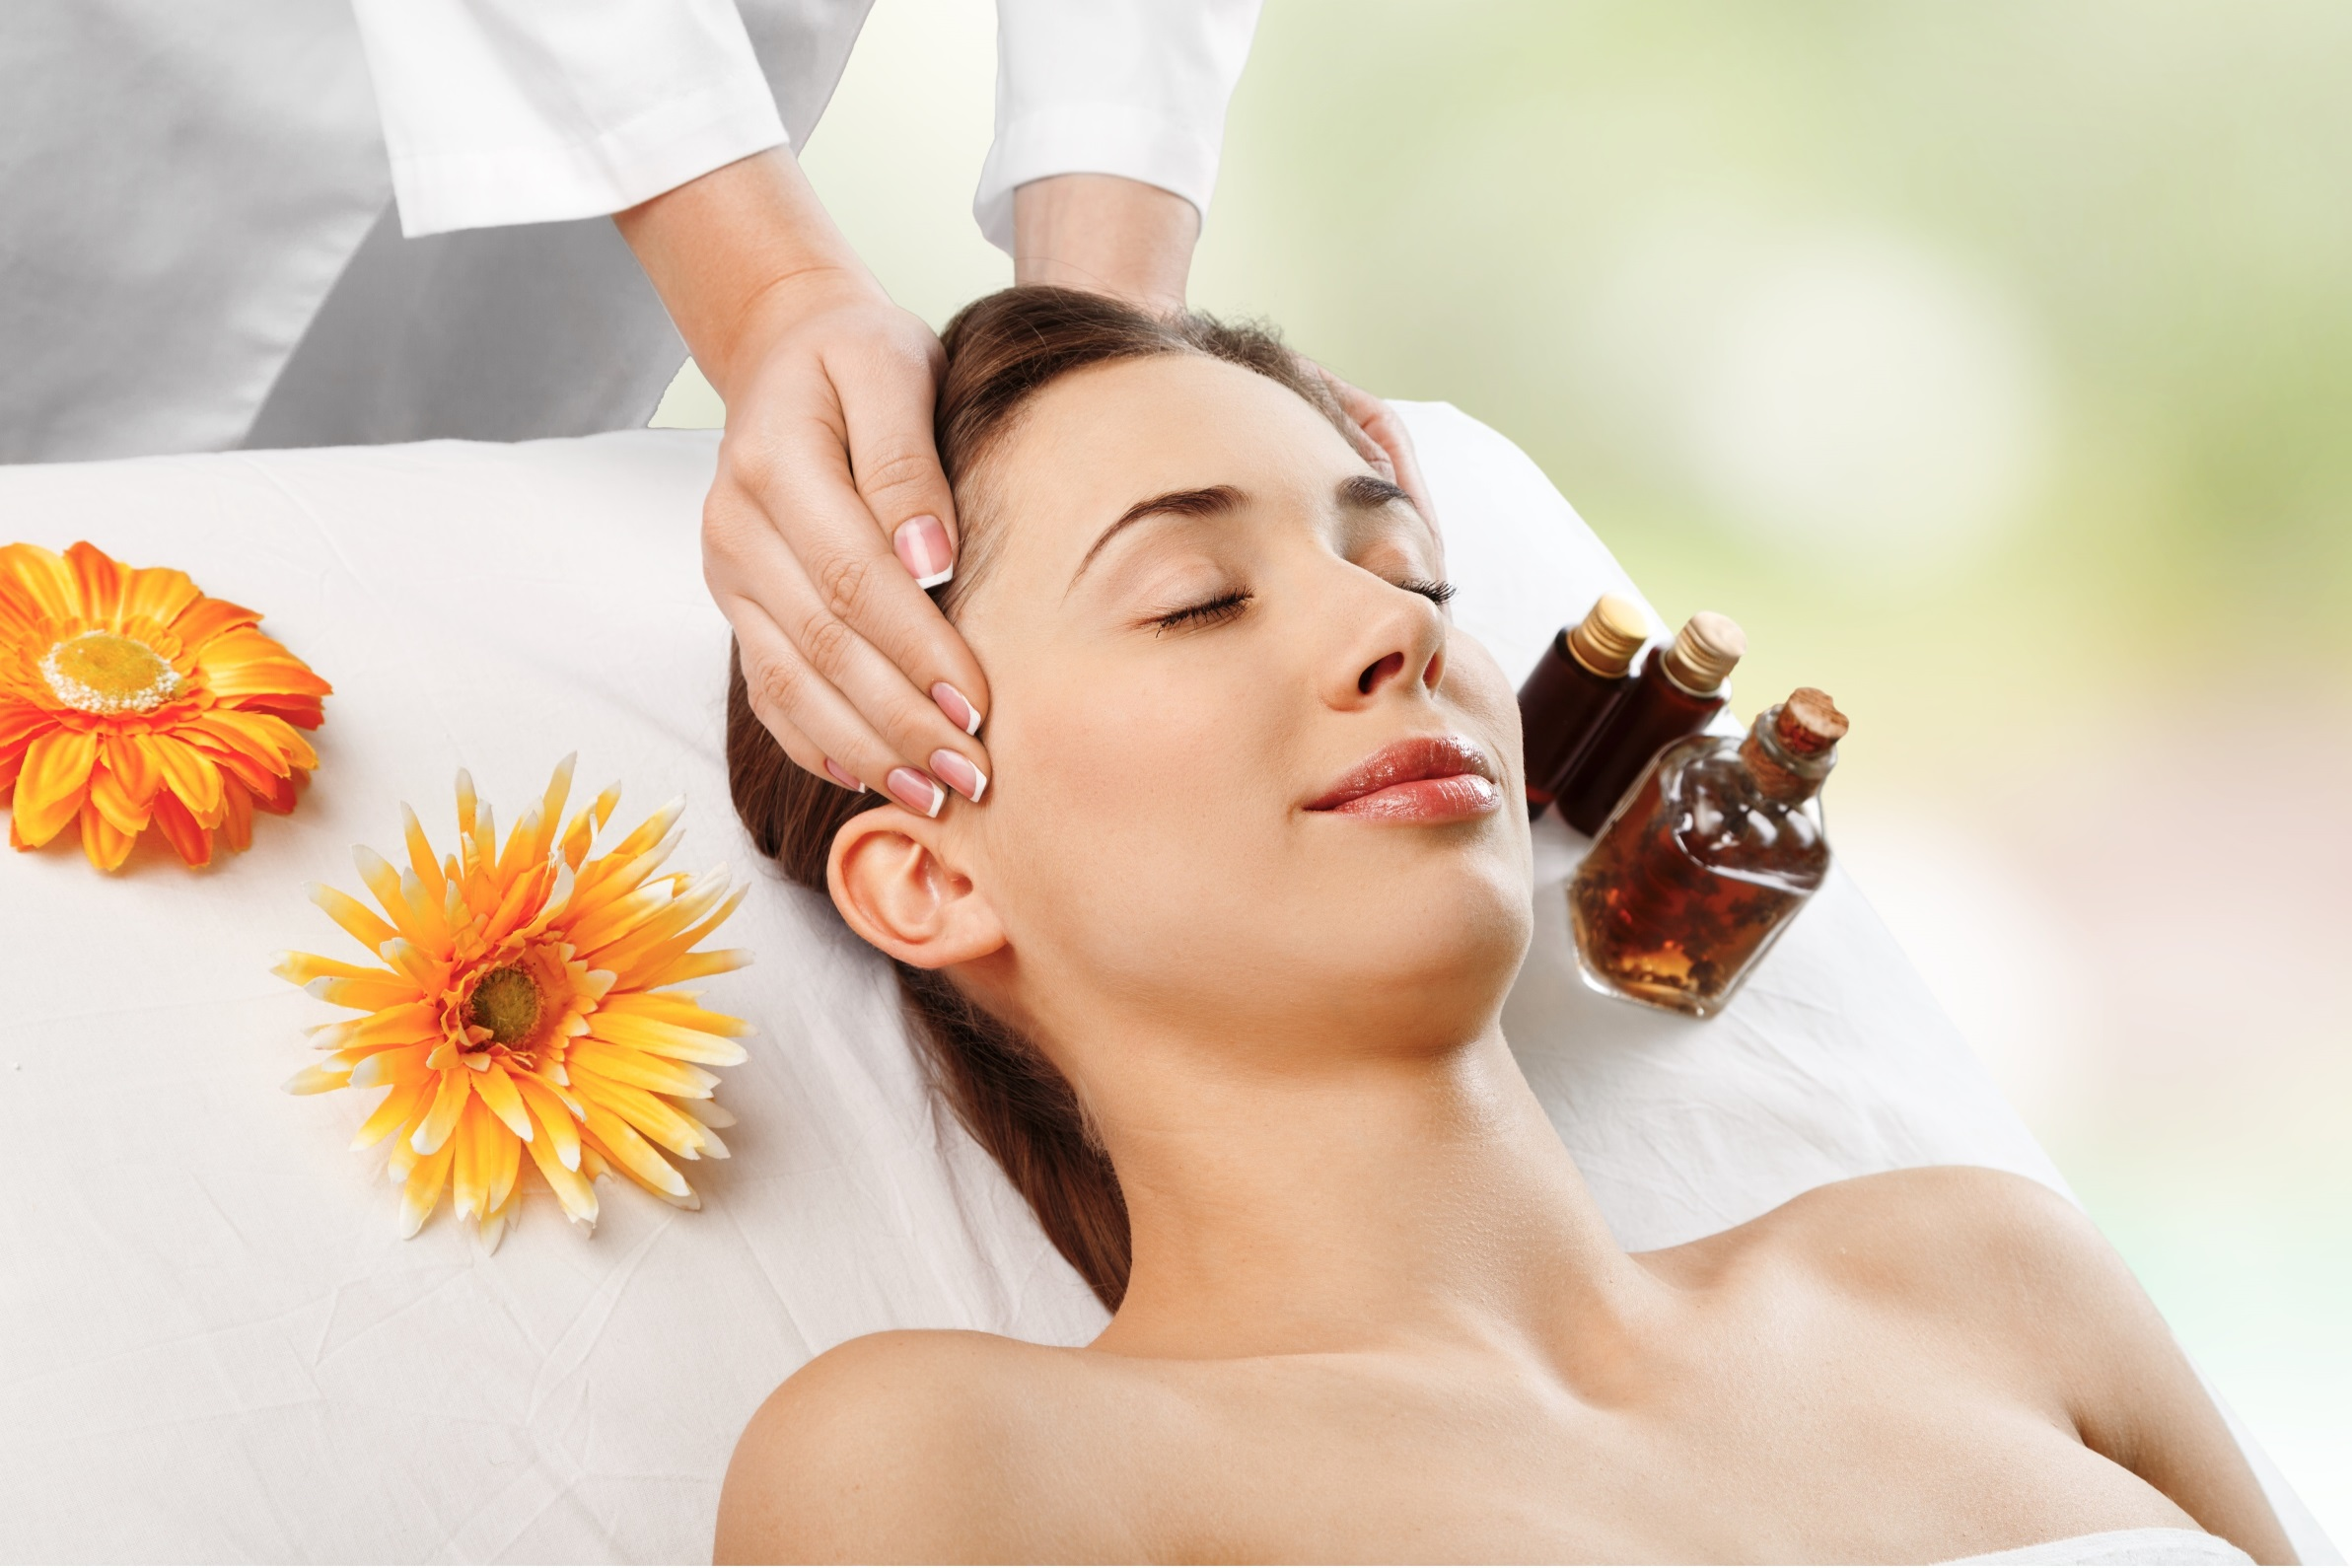 Massage with essential oils